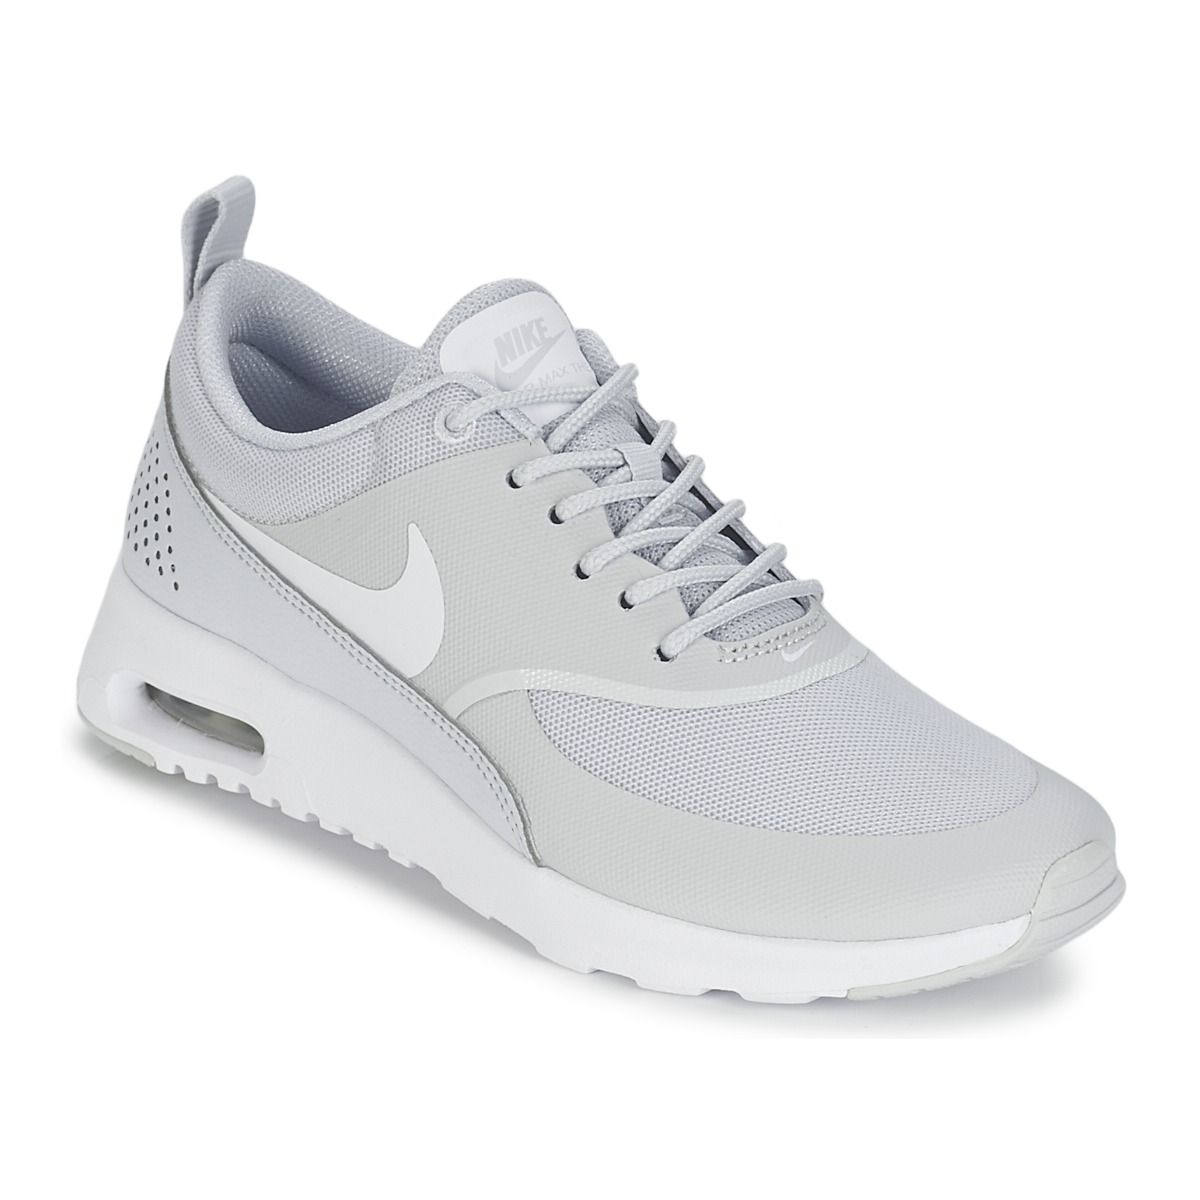 wholesale dealer 6960d d3b17 Baskets basses Nike AIR MAX THEA W Gris prix promo Baskets Femme Spartoo  119.00 €